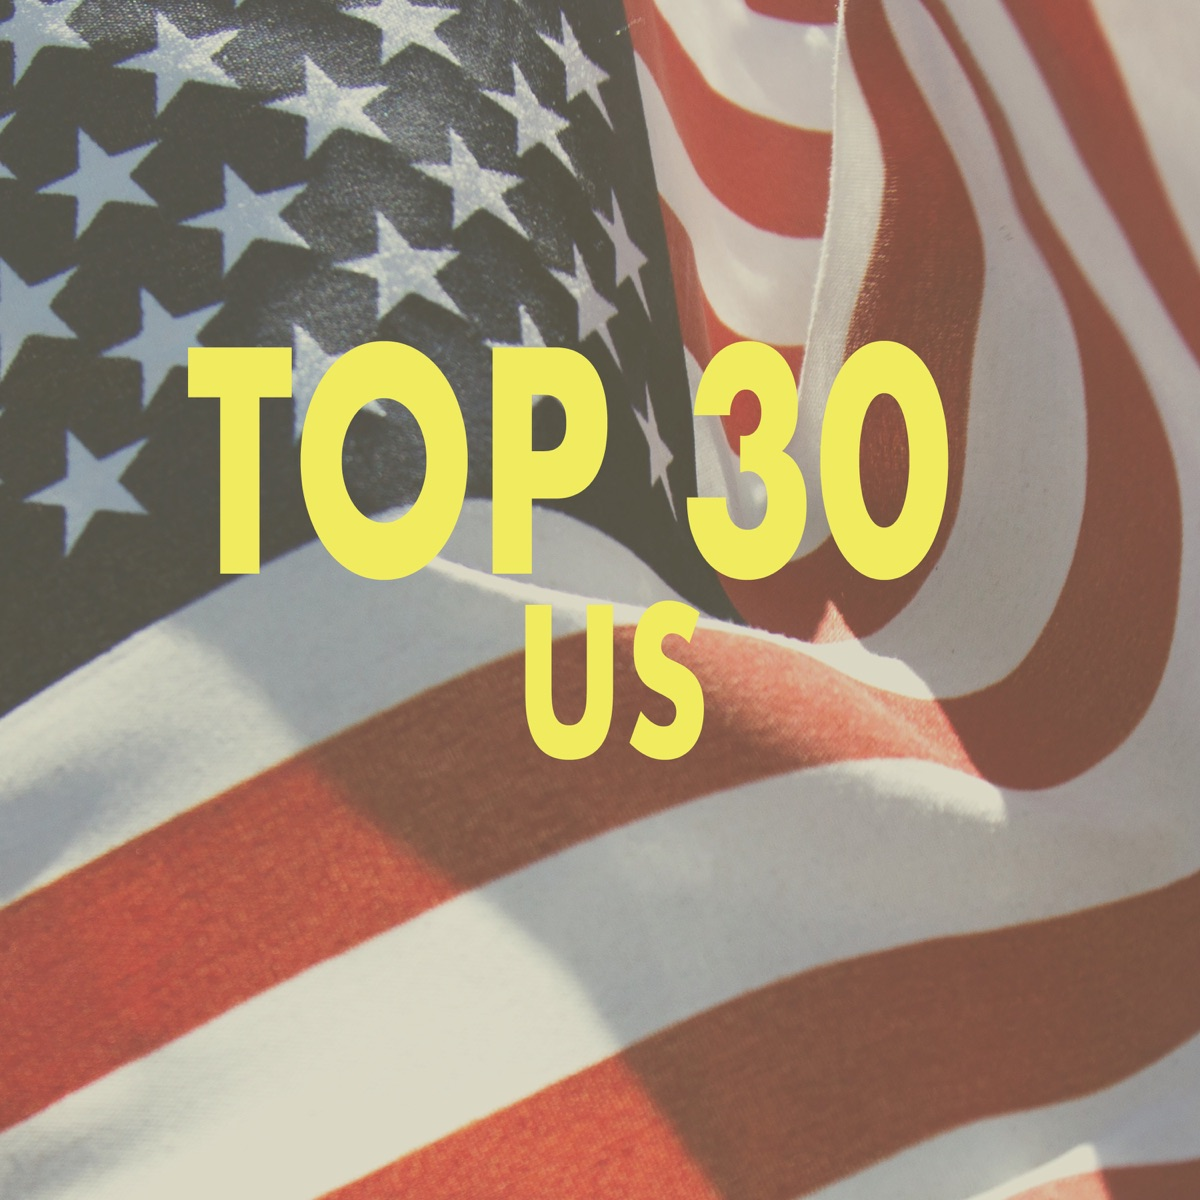 Top 30 US Various Artists CD cover